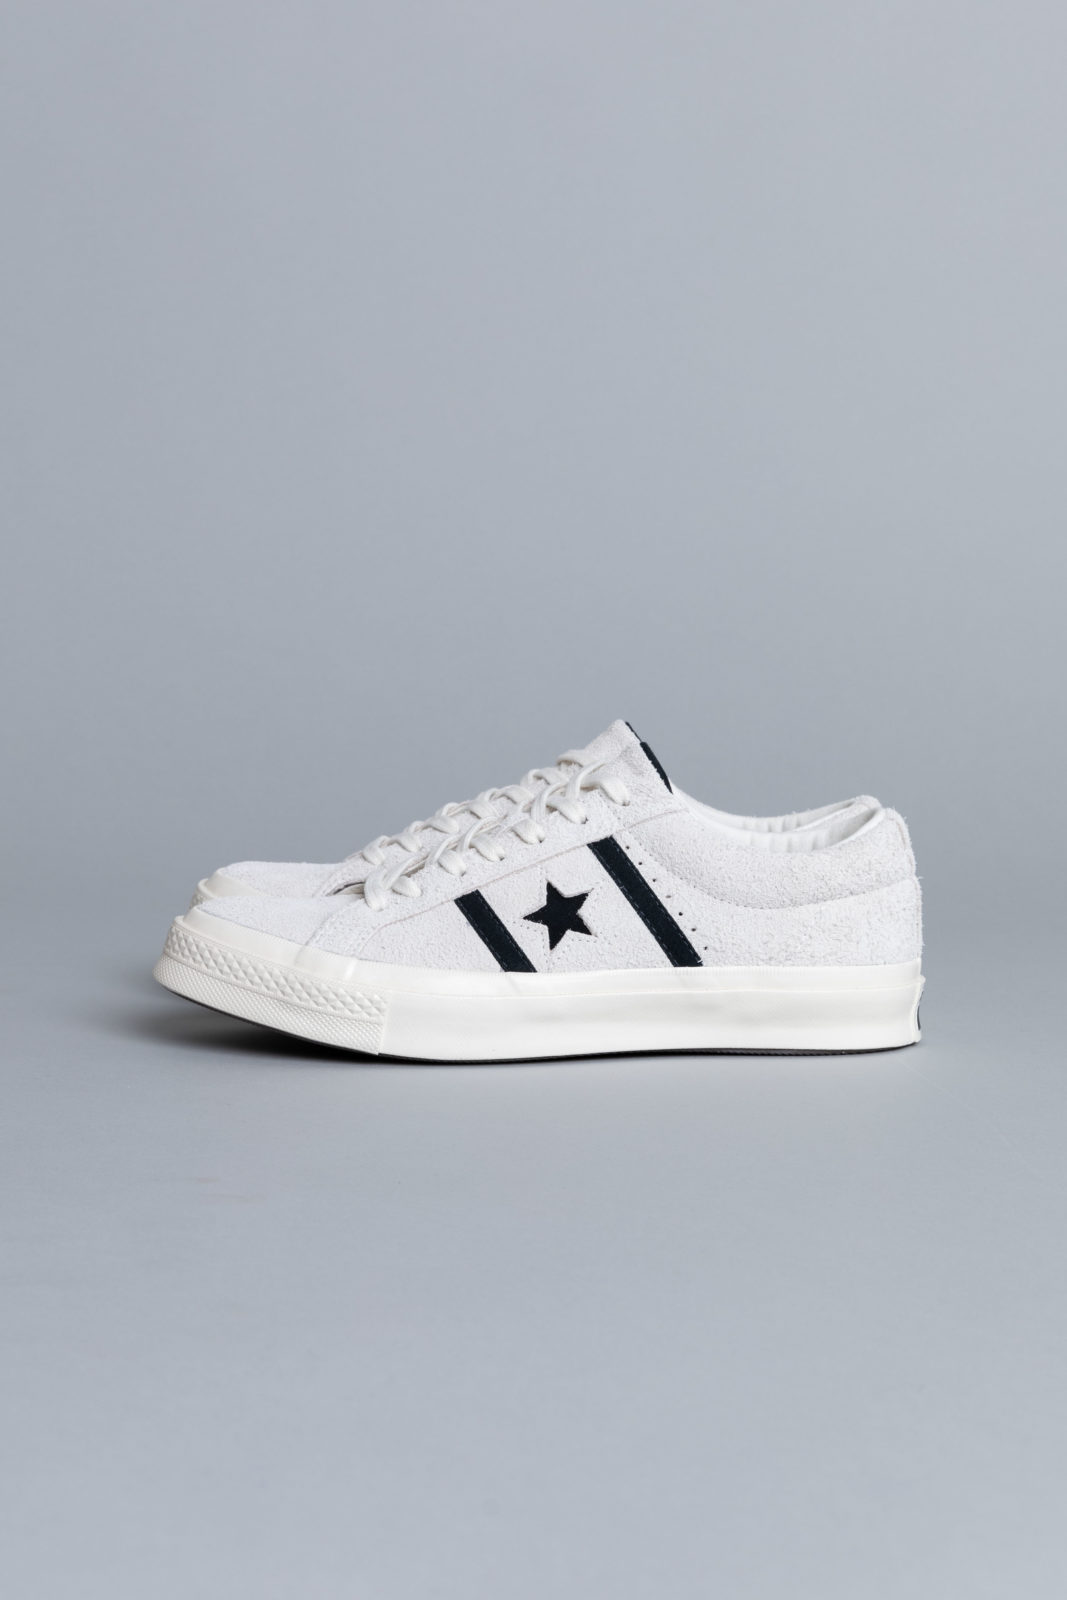 5c5caf4f5a02 Converse One Star Academy OX Egret • Centreville Store in Brussels